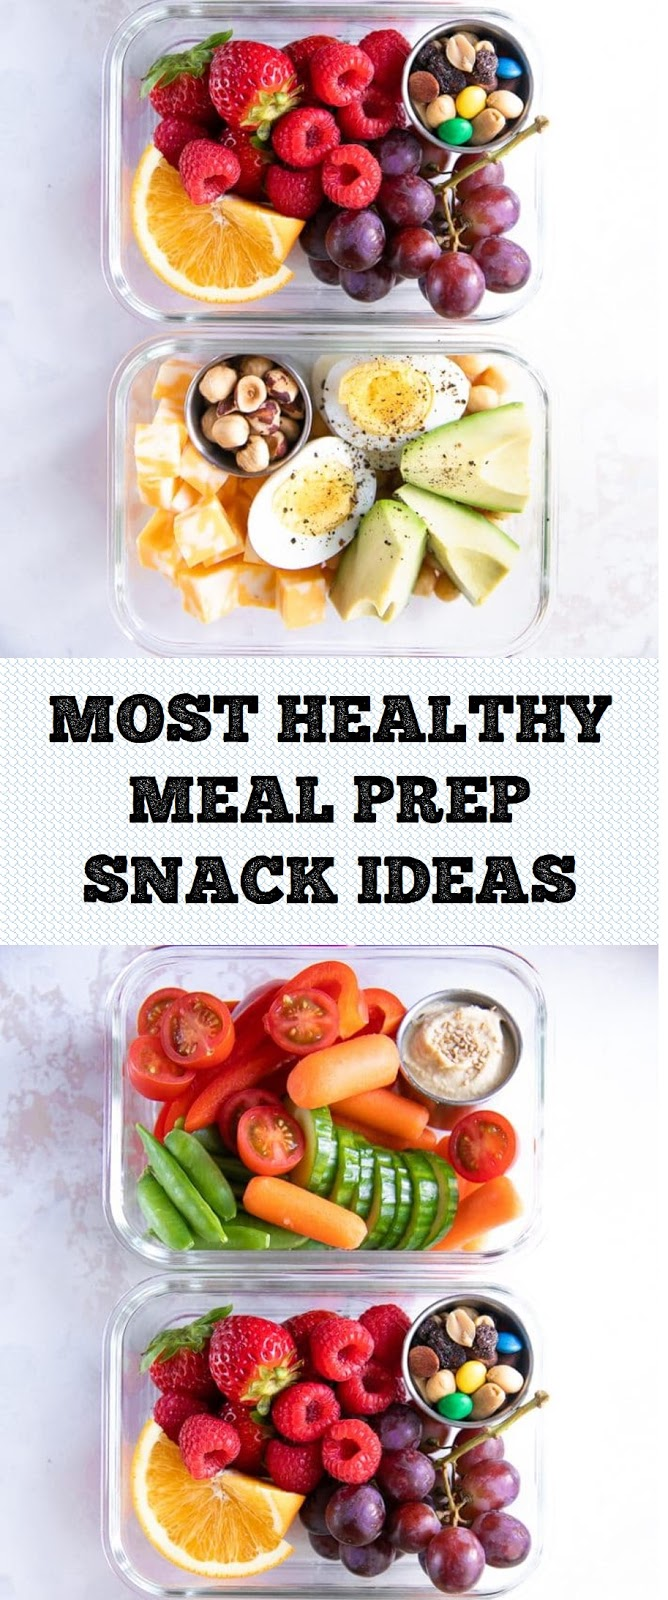 MOST HEALTHY MEAL PREP SNACK IDEAS